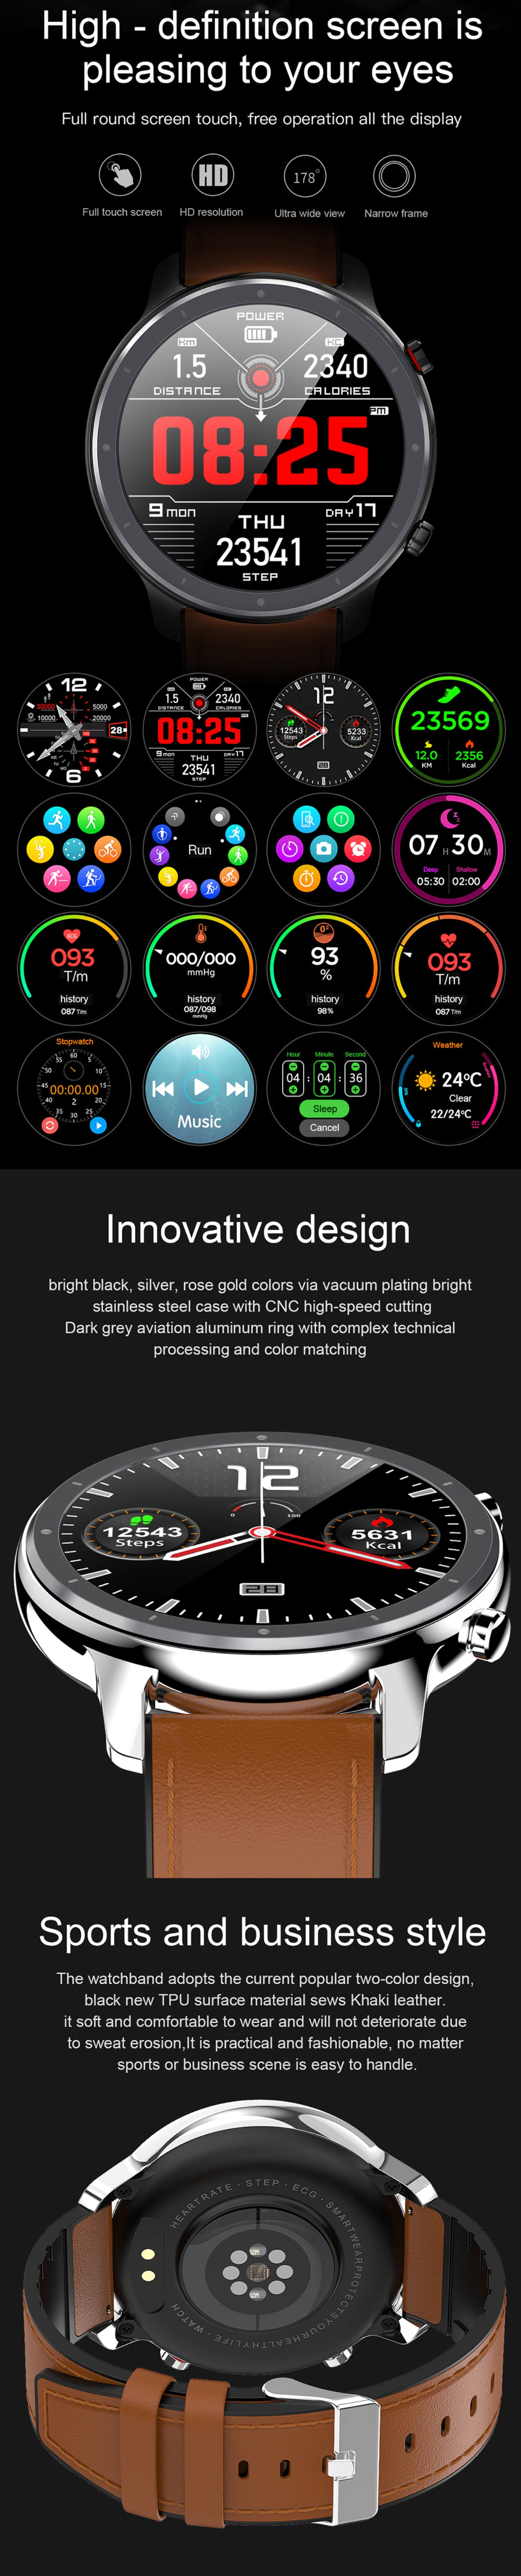 LEMFO L11 Smartwatch and Fitness Tracker High DEF Screen, Innovative Design, Sports and Business Style